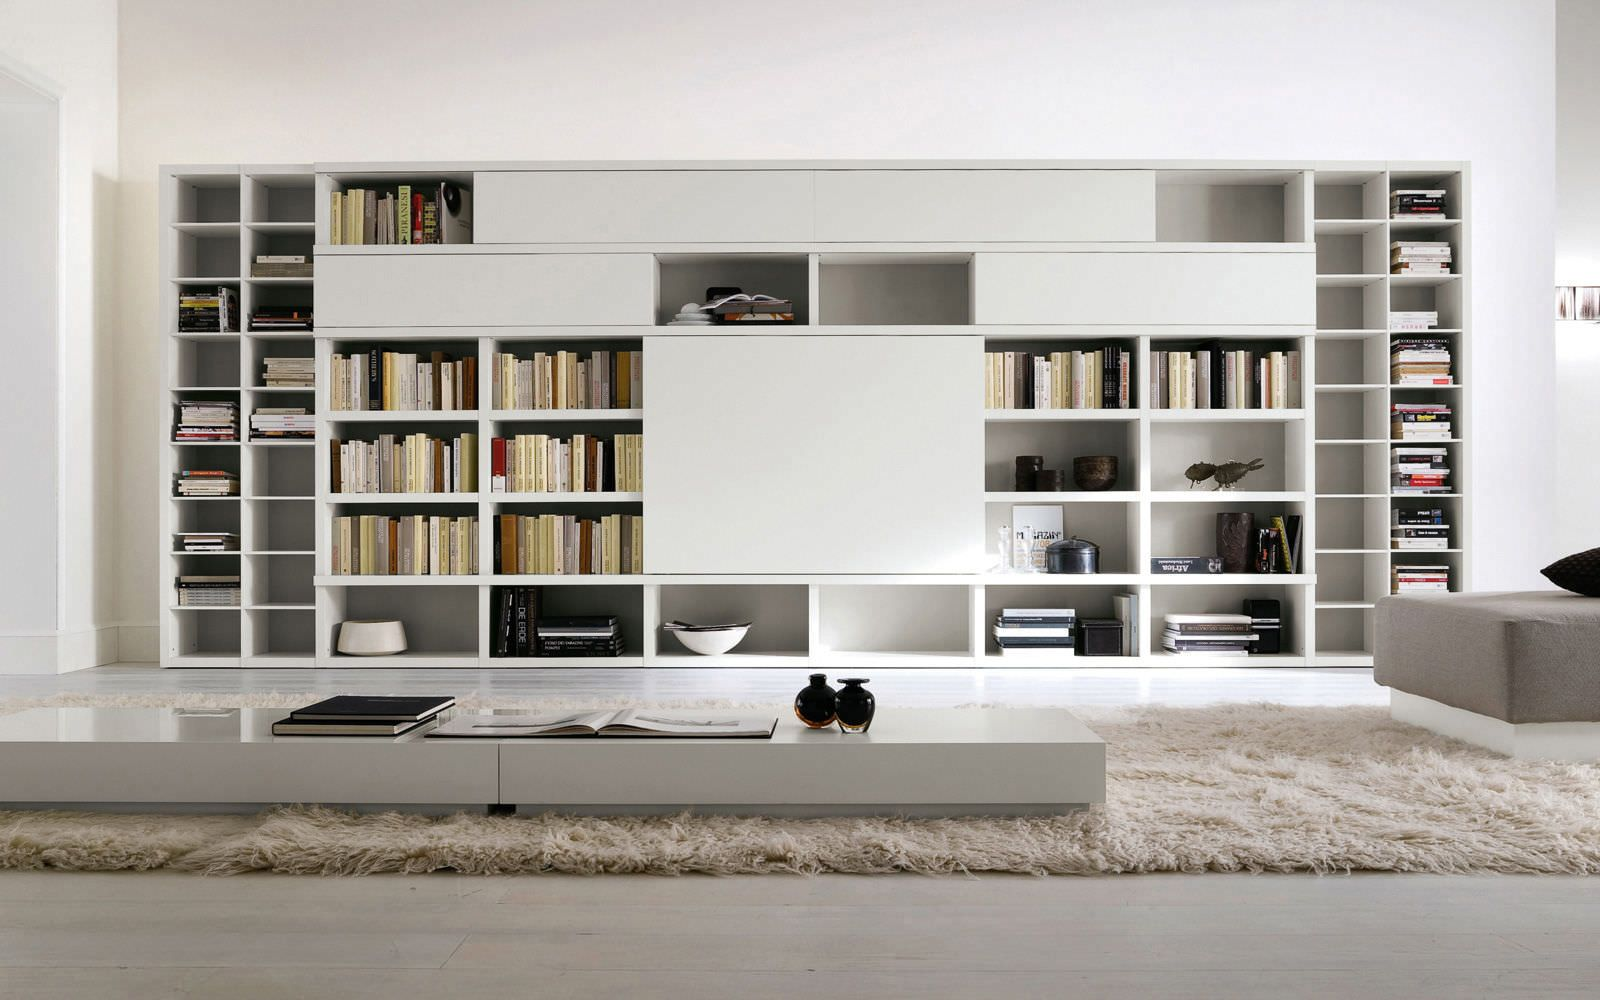 Astonishing Furniture Wonderful White Lacquered Contemporary Big Bookcase Design Cool Home Interior Book Storage Bookcases Perfect For Smart